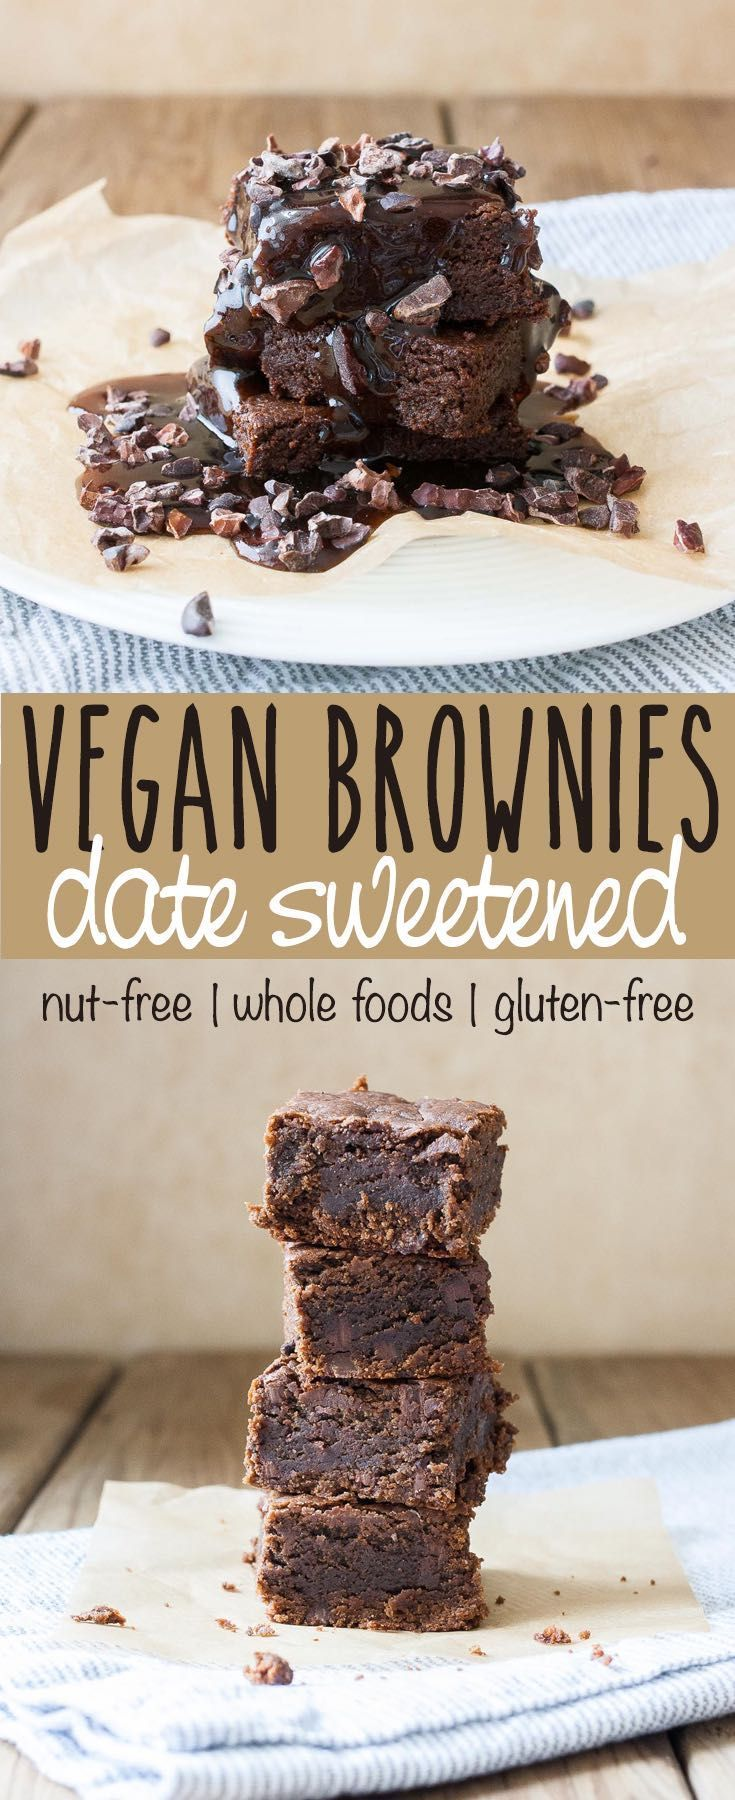 Perfect Vegan Date Sweetened Brownies with Caramel Crunch topping…